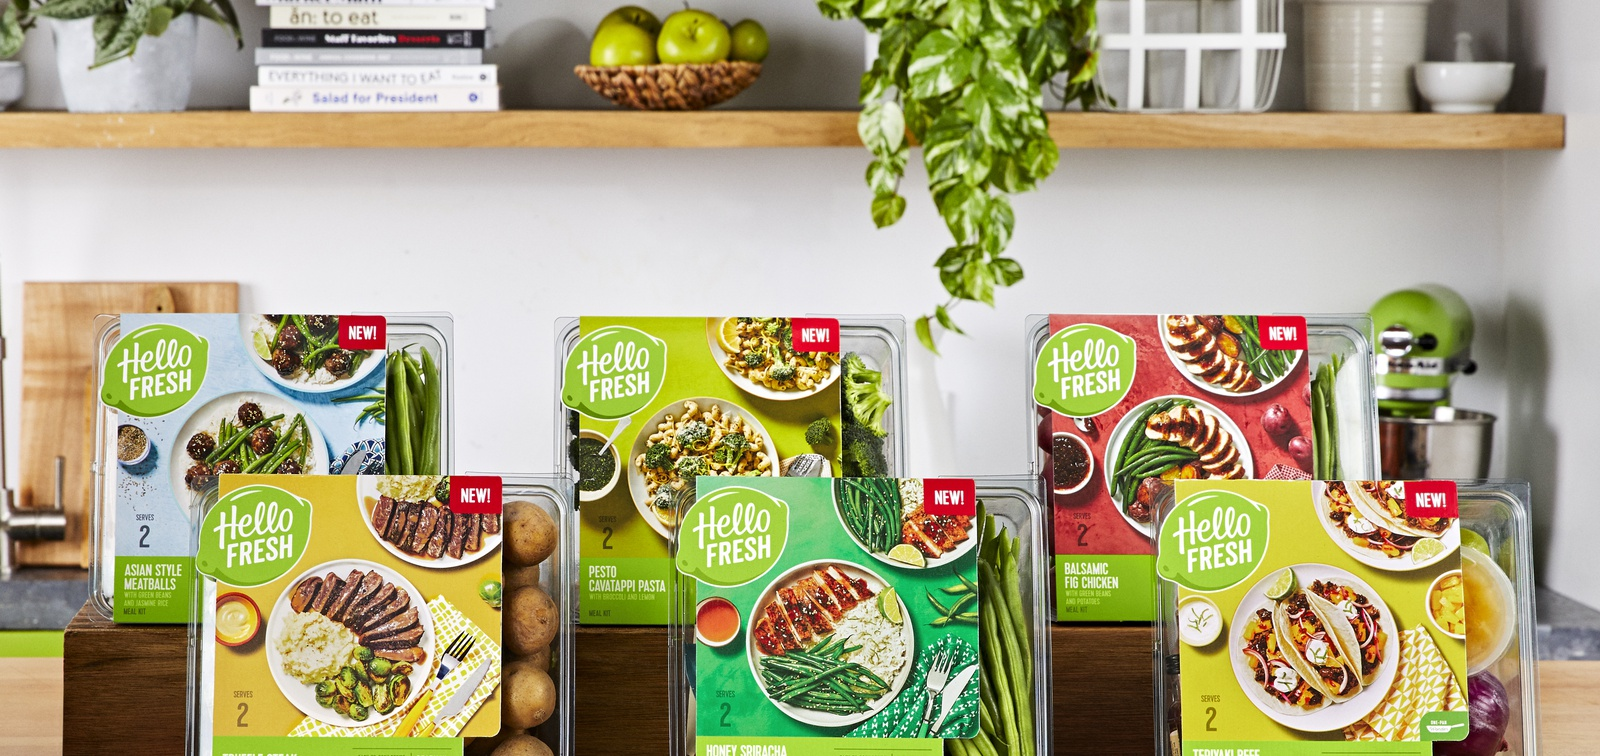 HelloFresh acquires ready-to-eat meal company Factor75